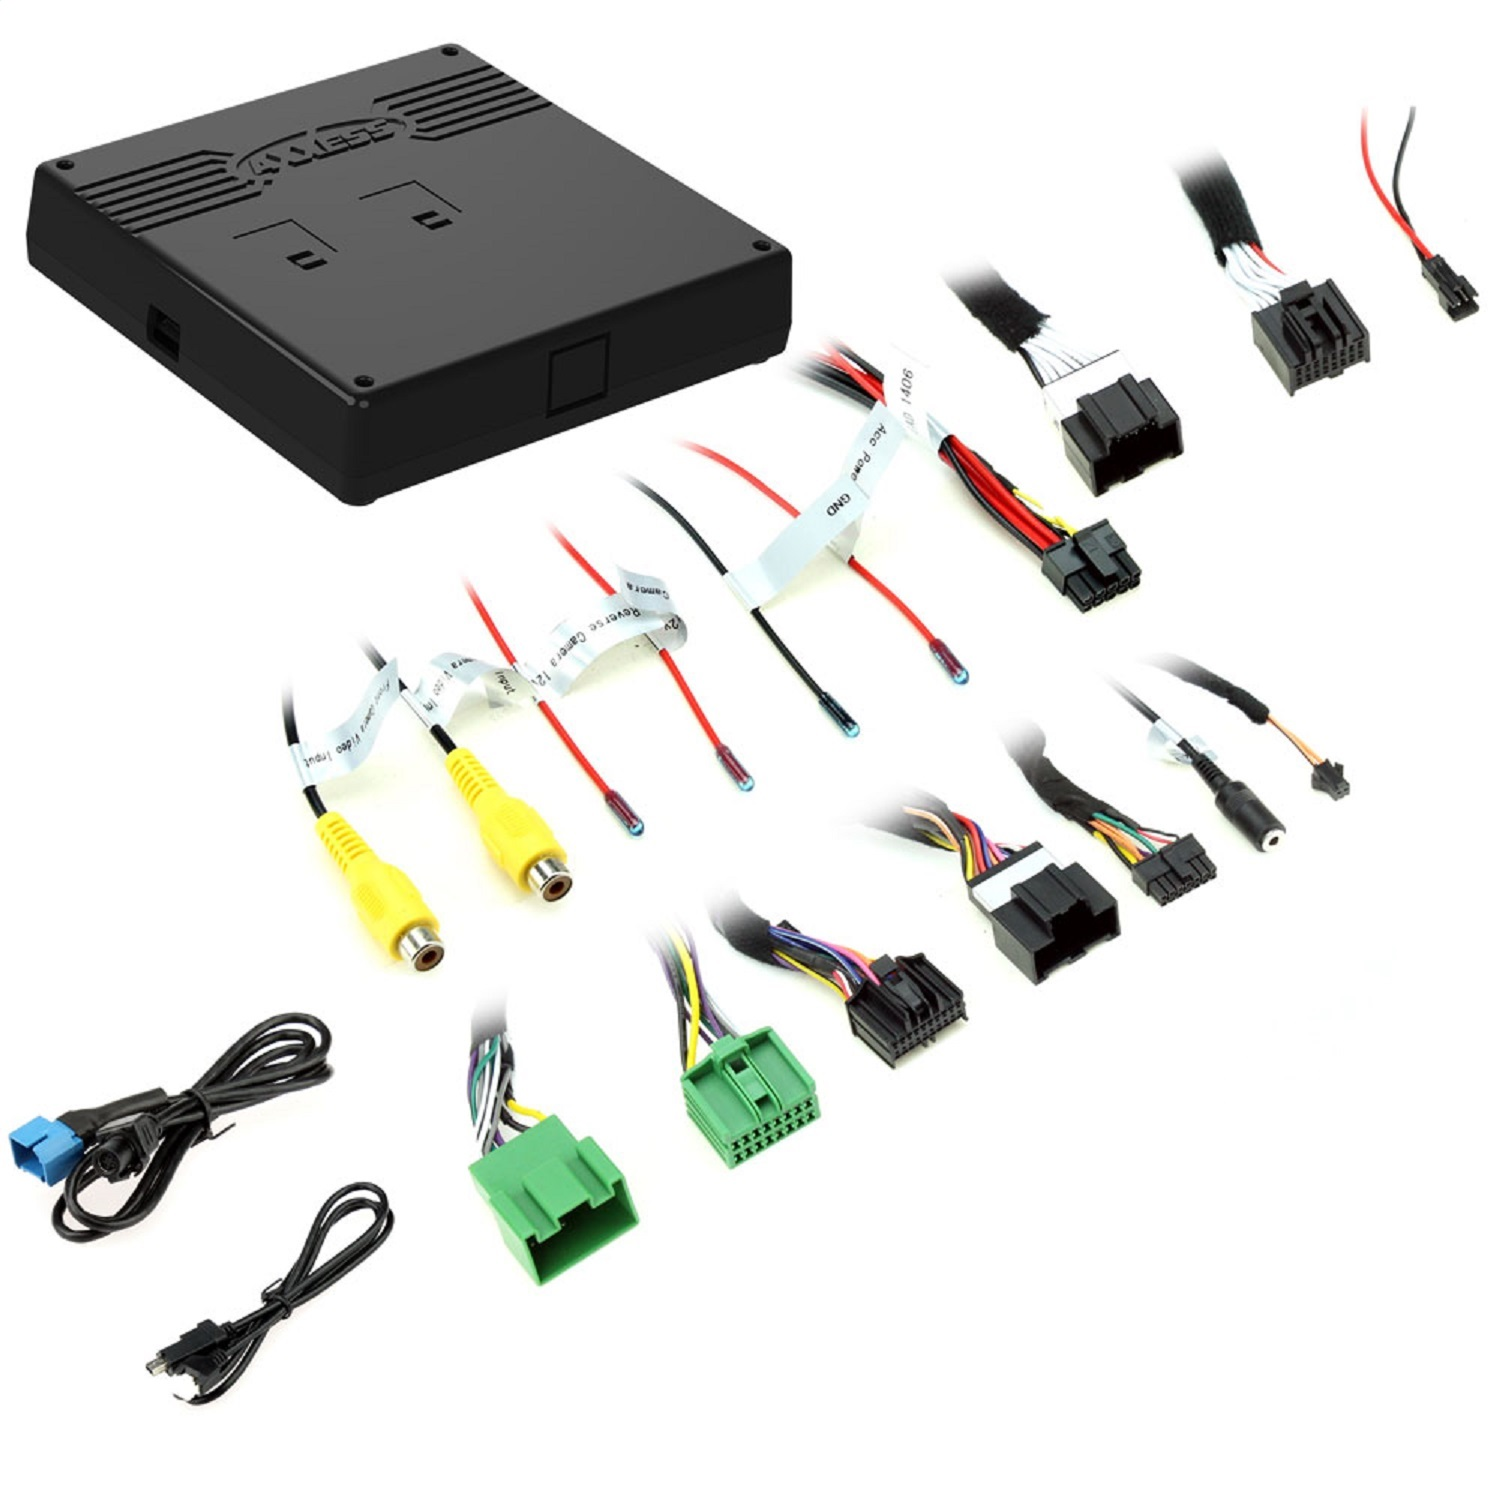 Metra AX-AM-GM91 Interface For Camera And HDMI